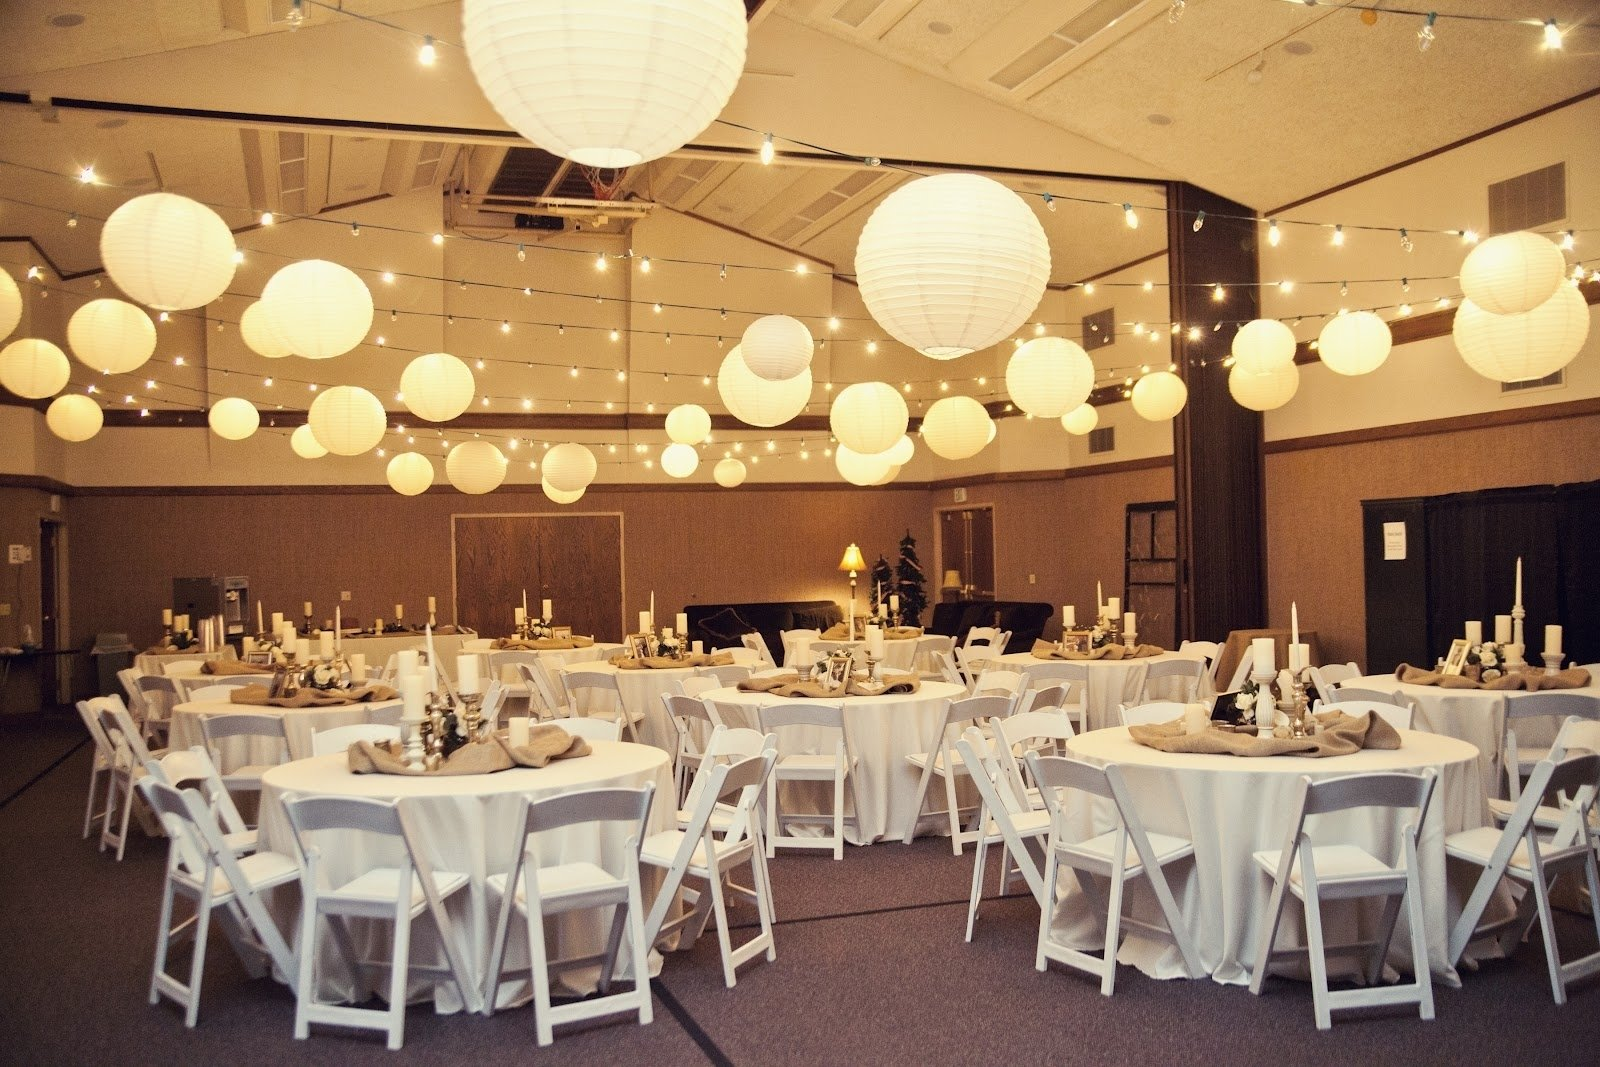 10 Famous Wedding On A Budget Ideas beaut gallery website wedding reception ideas budget small family